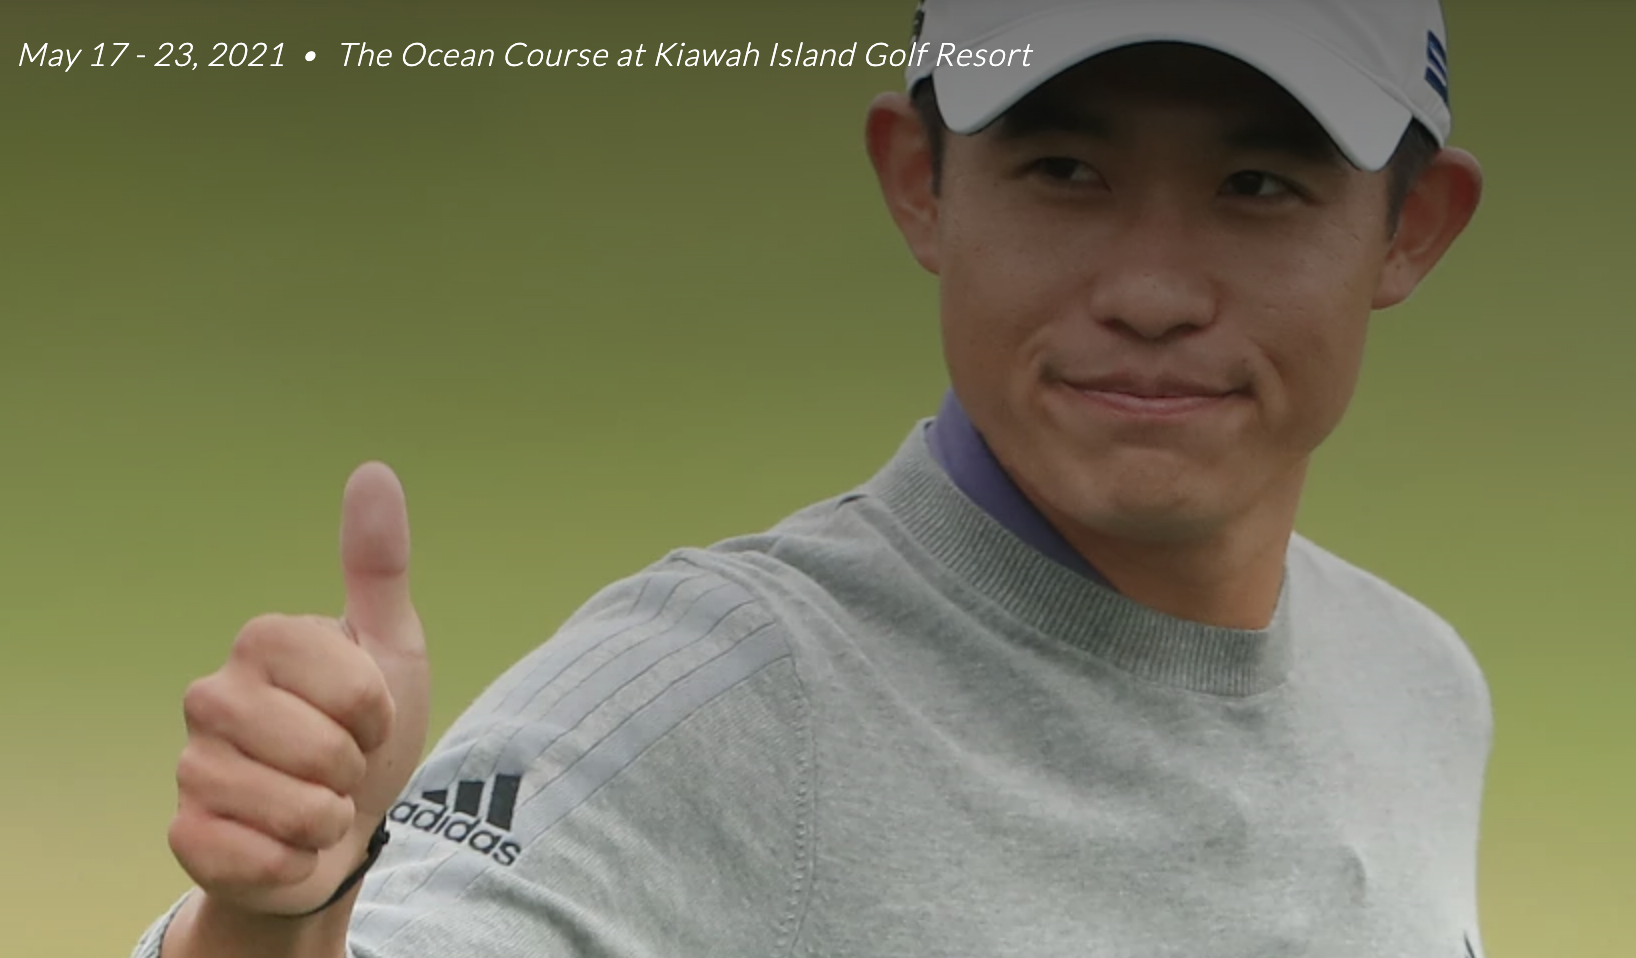 10 things to know from final round of the 2020 PGA Championship won by Collin Morikawa